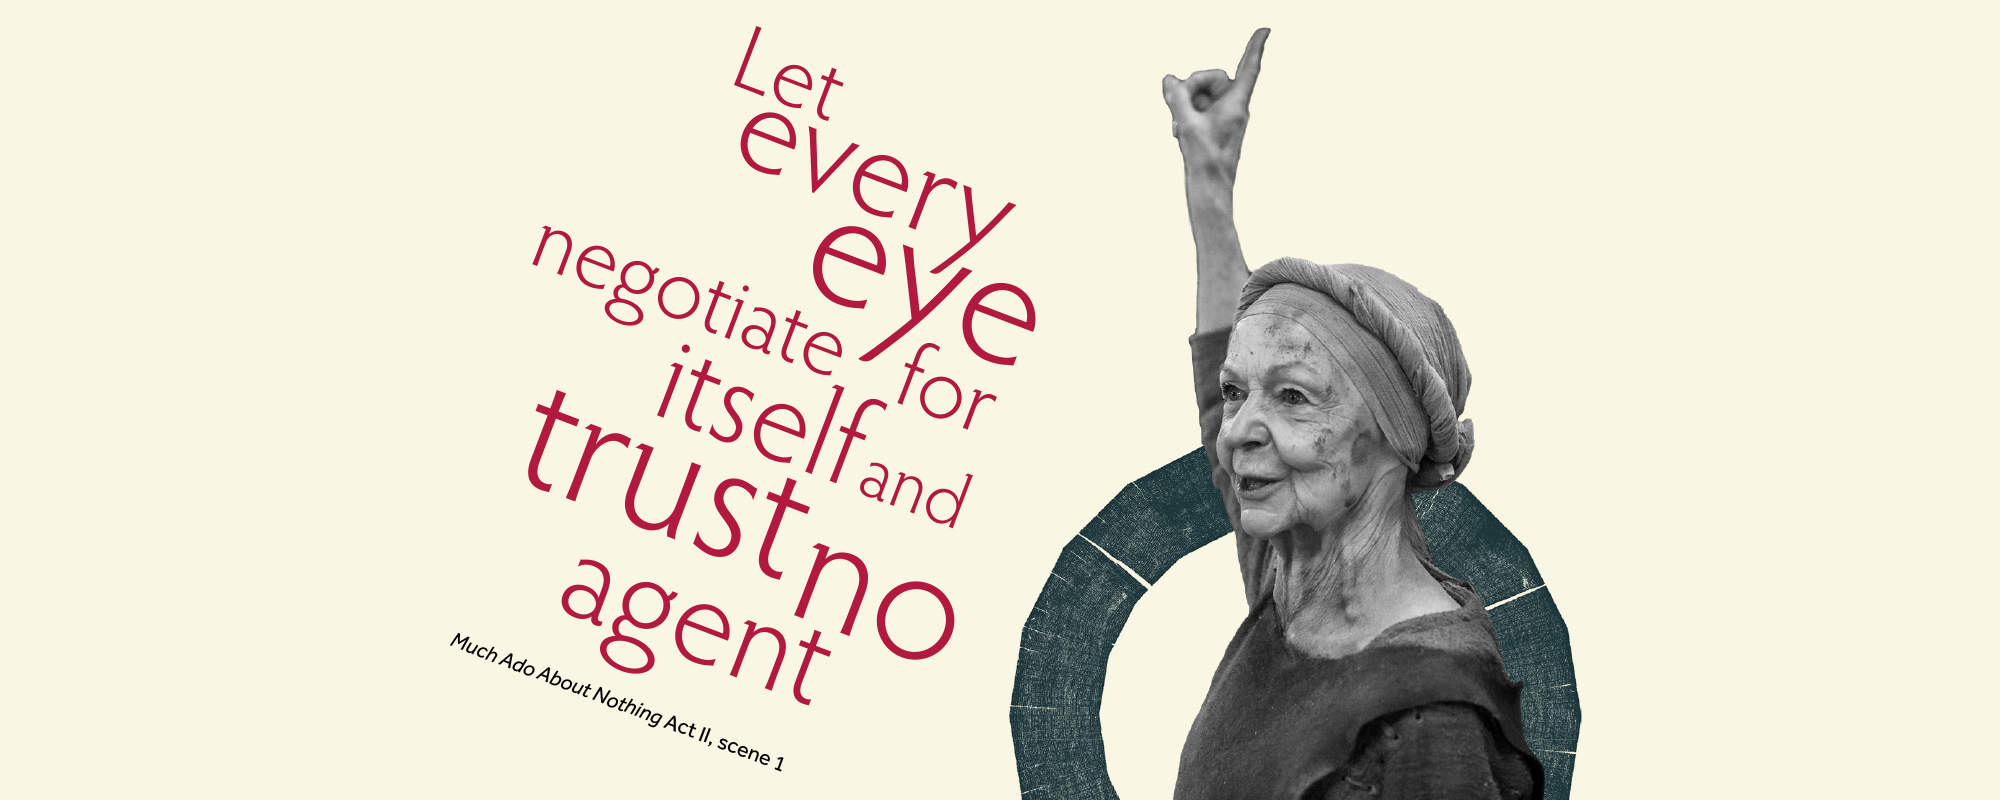 Text: Let every eye negotiate for itself and trust no agent, Much Ado About Nothing, Act II, scene 1 and image of a woman pointing her finger upwards above her head